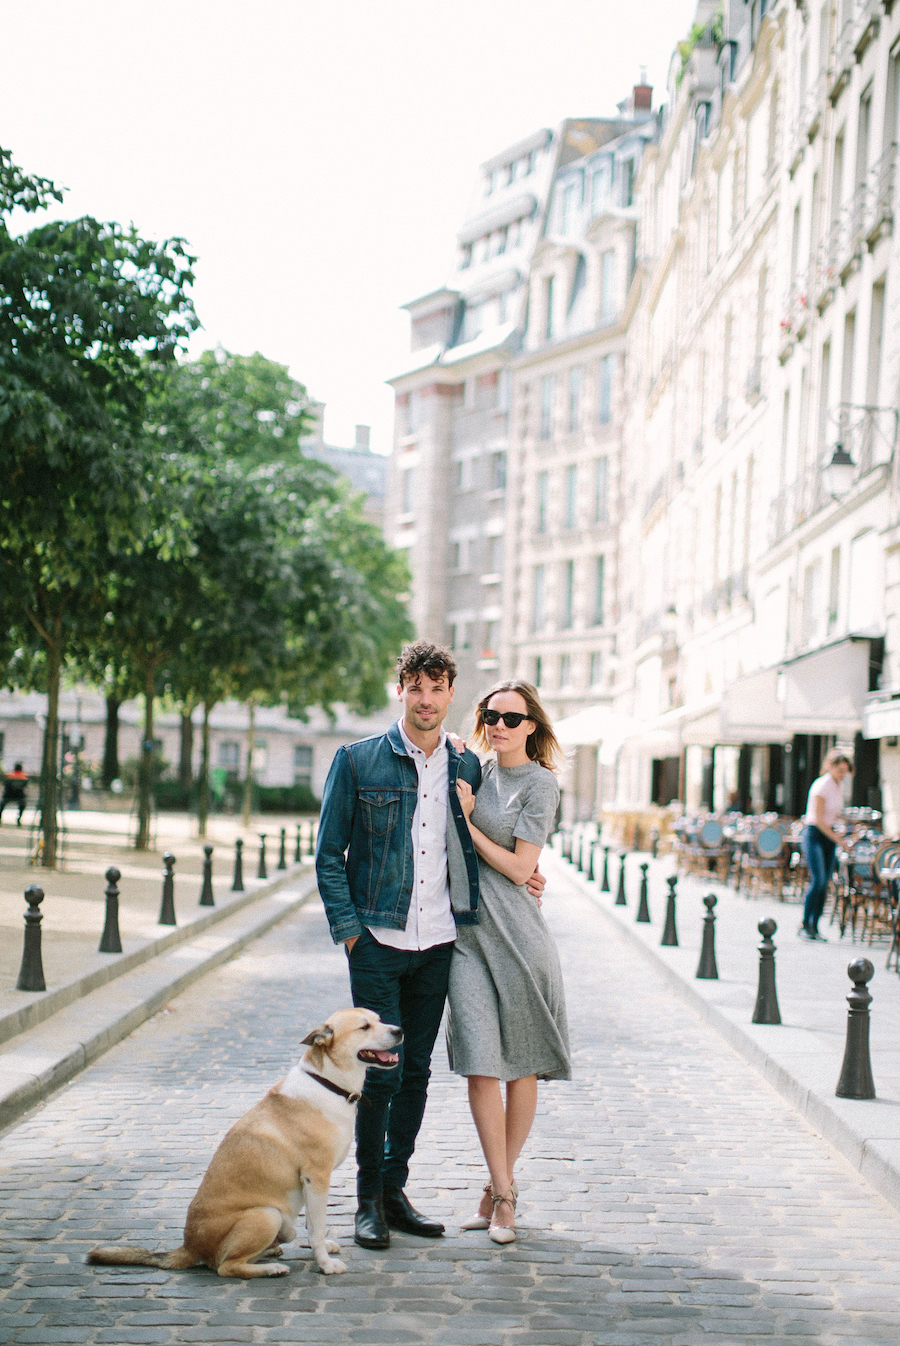 saya-photography-pre-wedding-couple-engagement-paris-ile-saint-louis-16.jpg